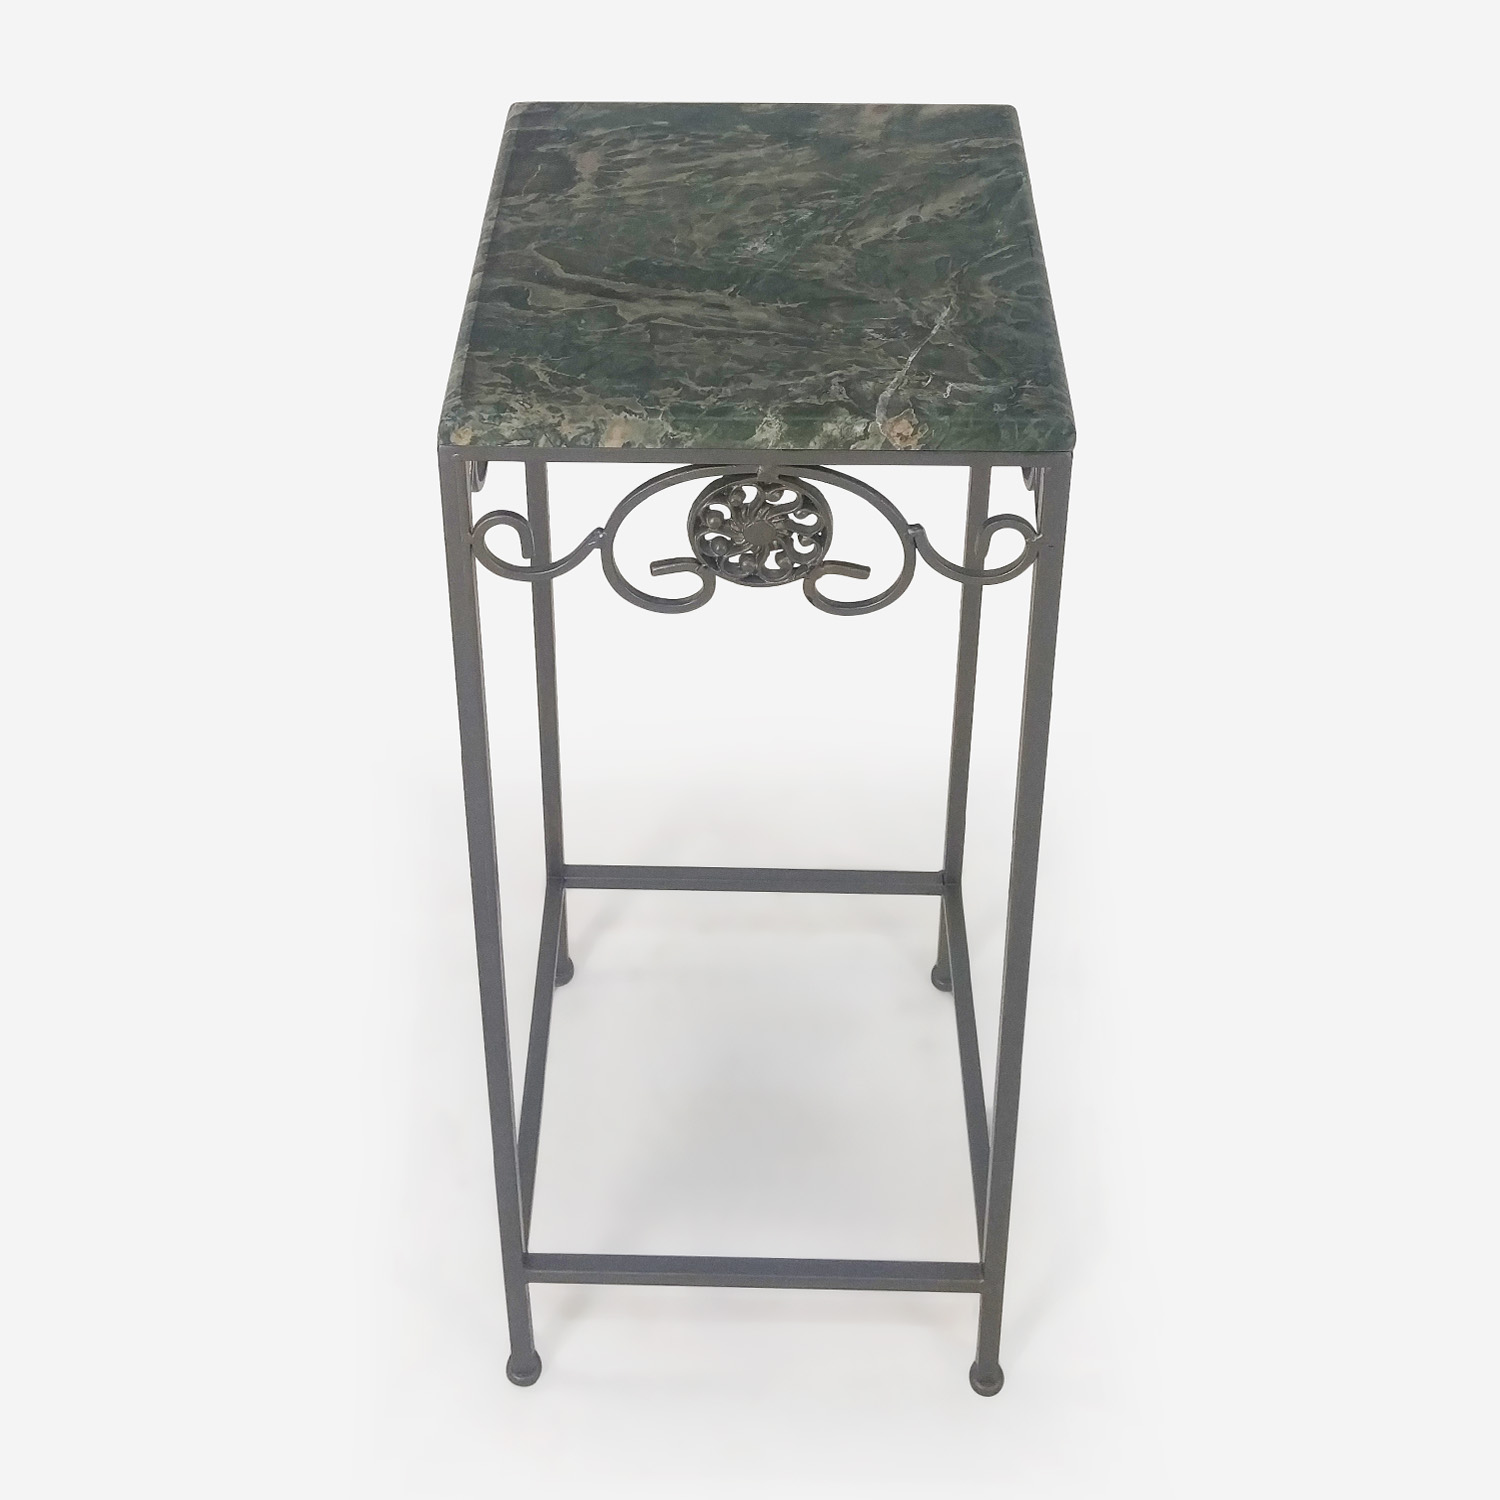 Marble Top Small Table used